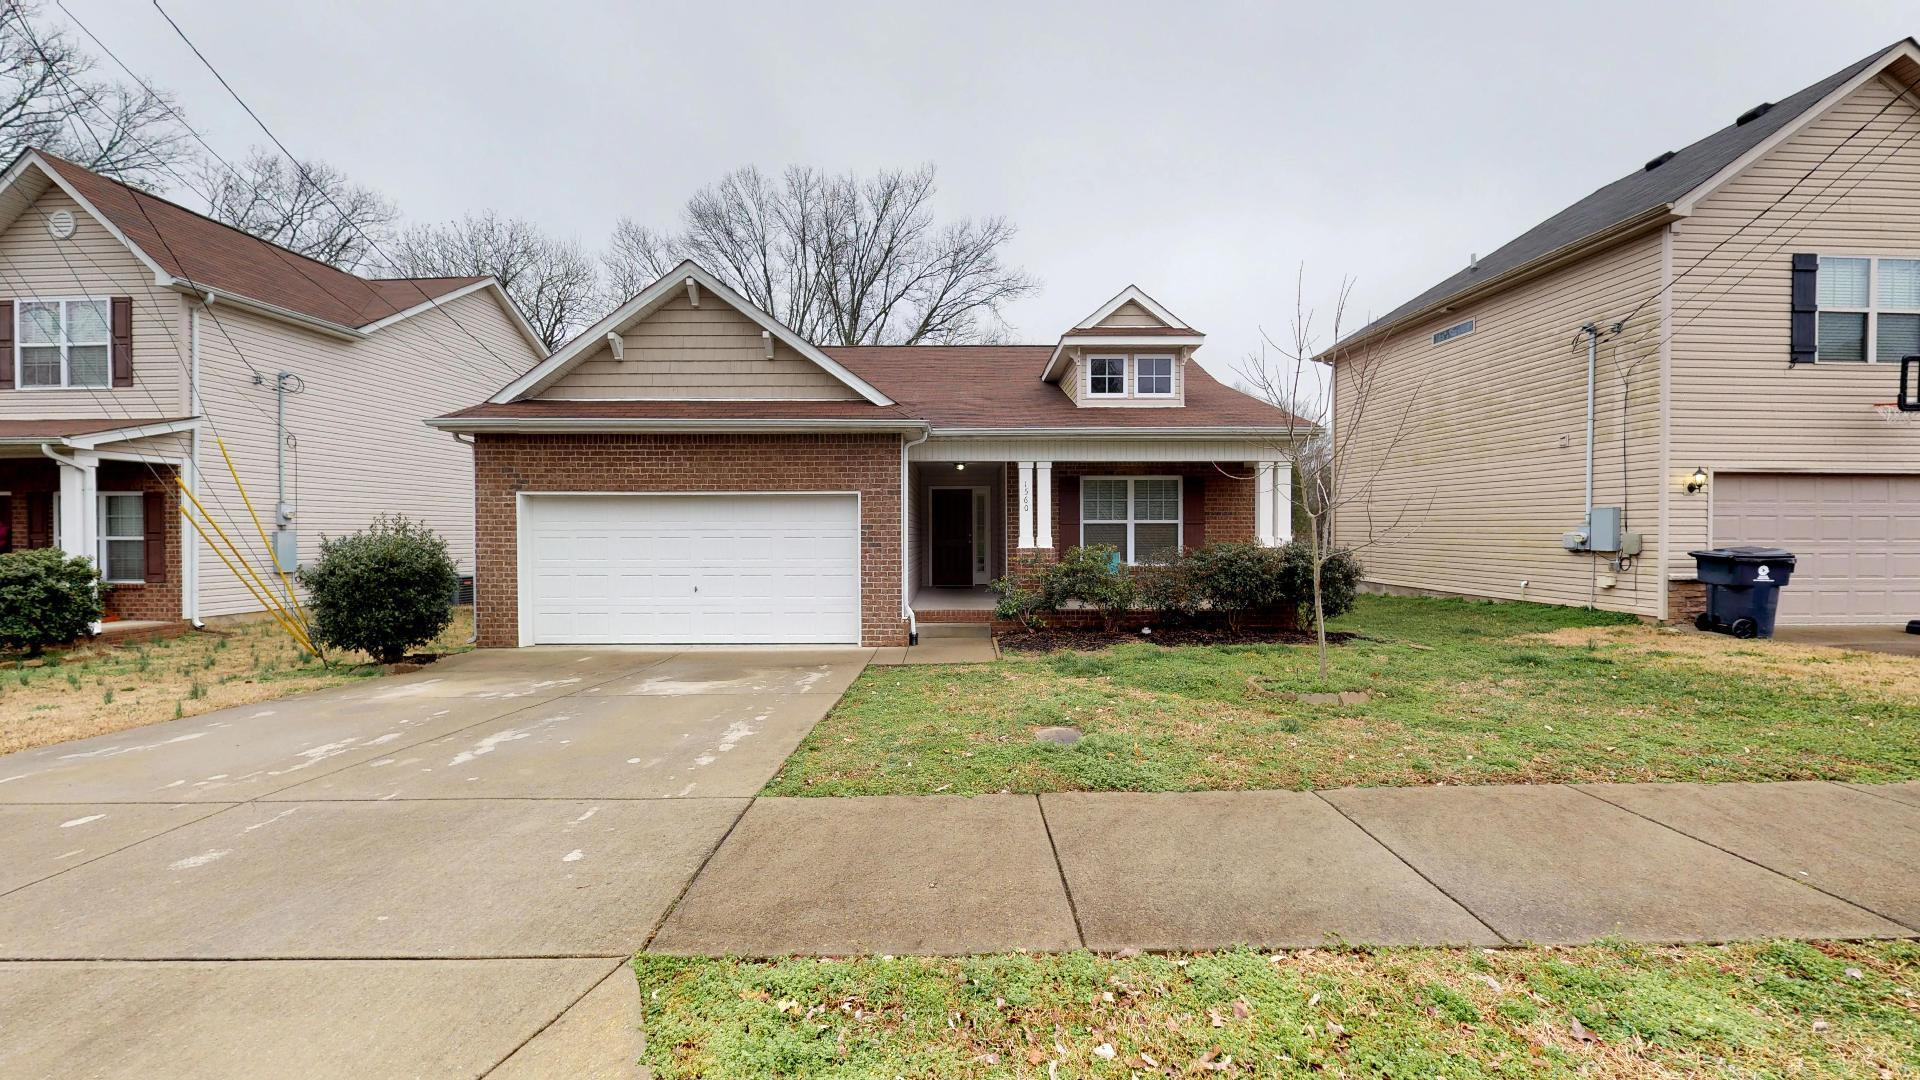 1560 Rockglade Run, Nashville-Antioch in Davidson County County, TN 37013 Home for Sale